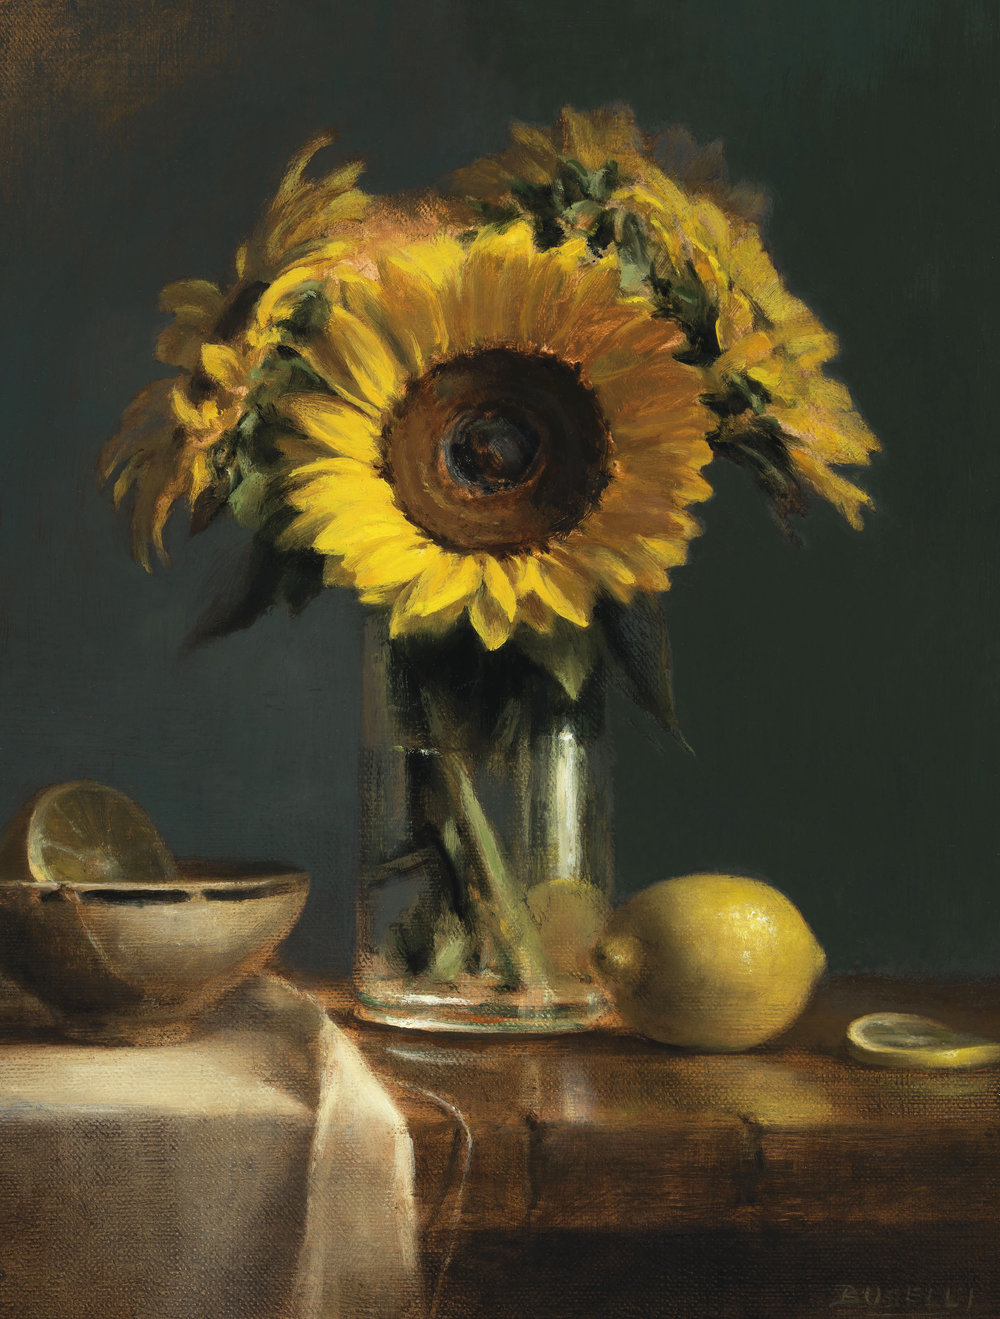 Sunflower with Lemons - AWA Tuscon Image.jpg